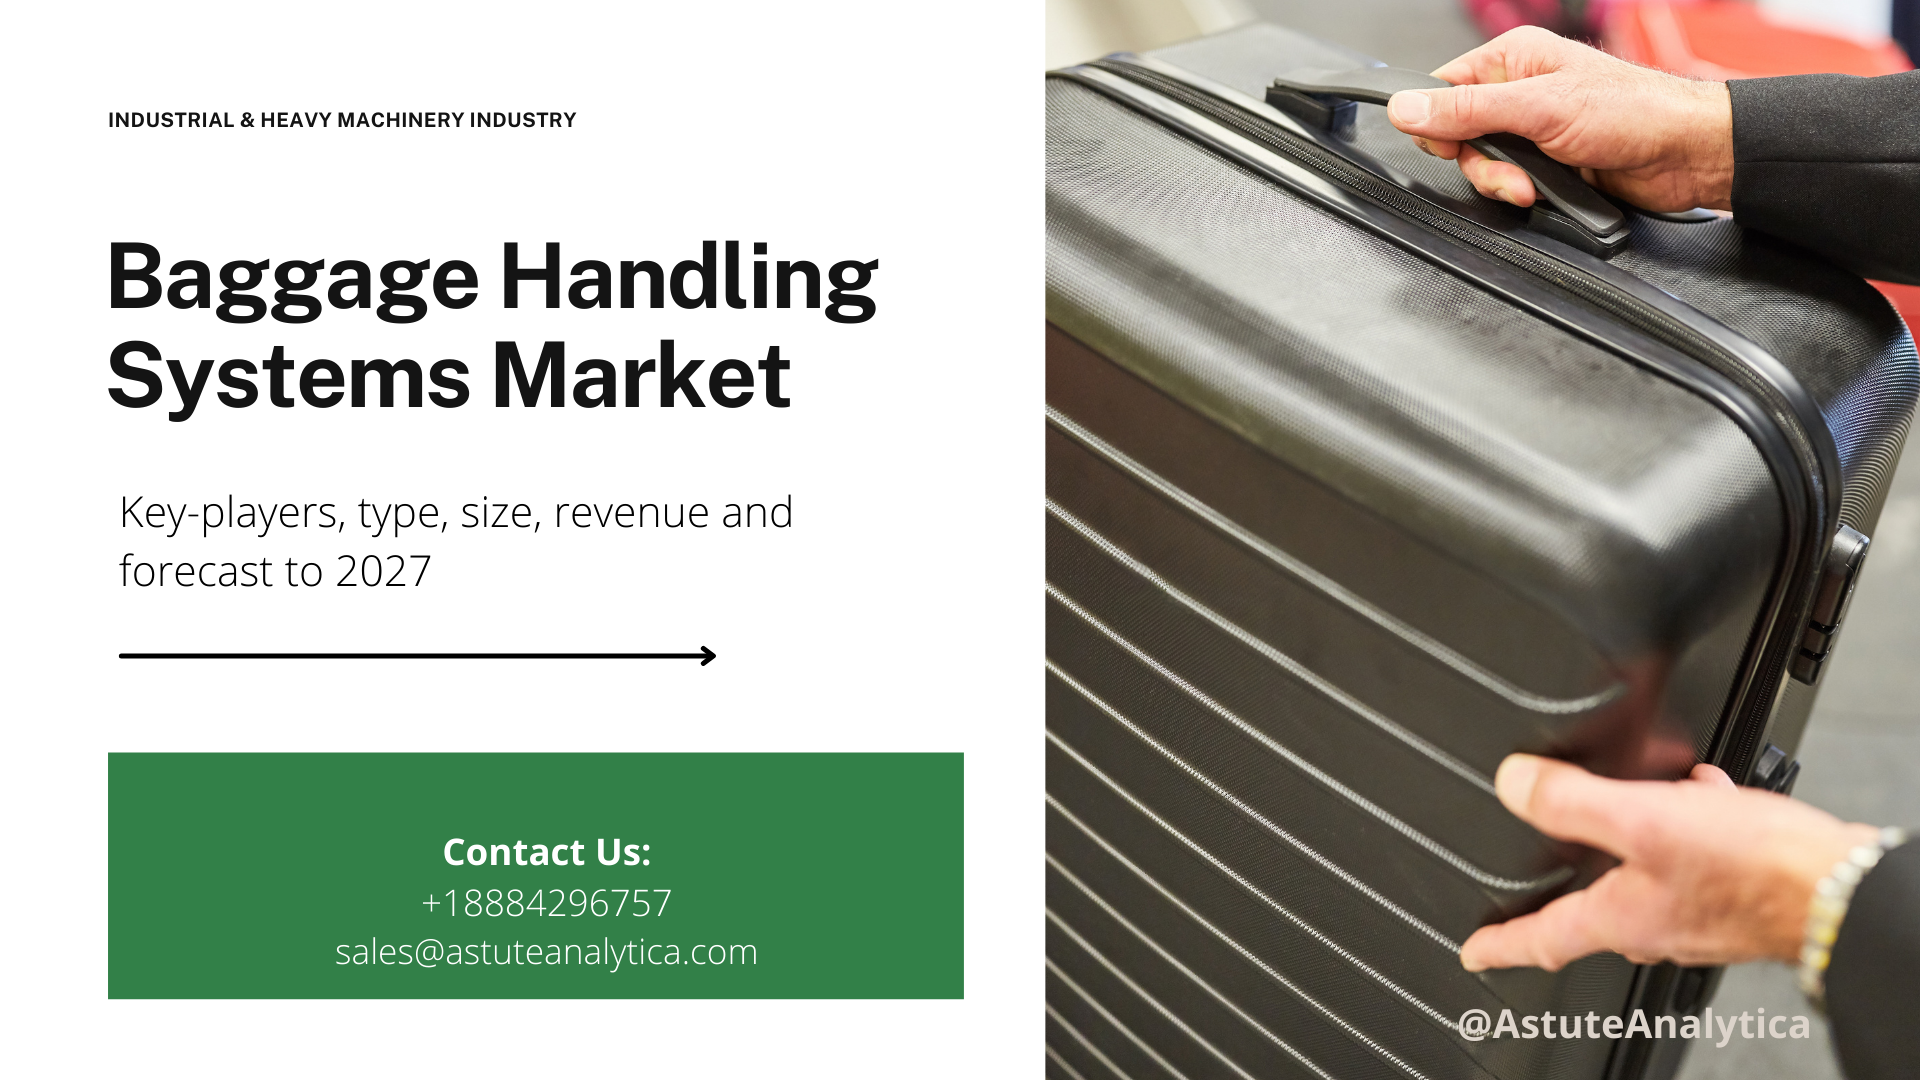 Baggage handling systems market key-players, type, size, revenue and forecast to 2027